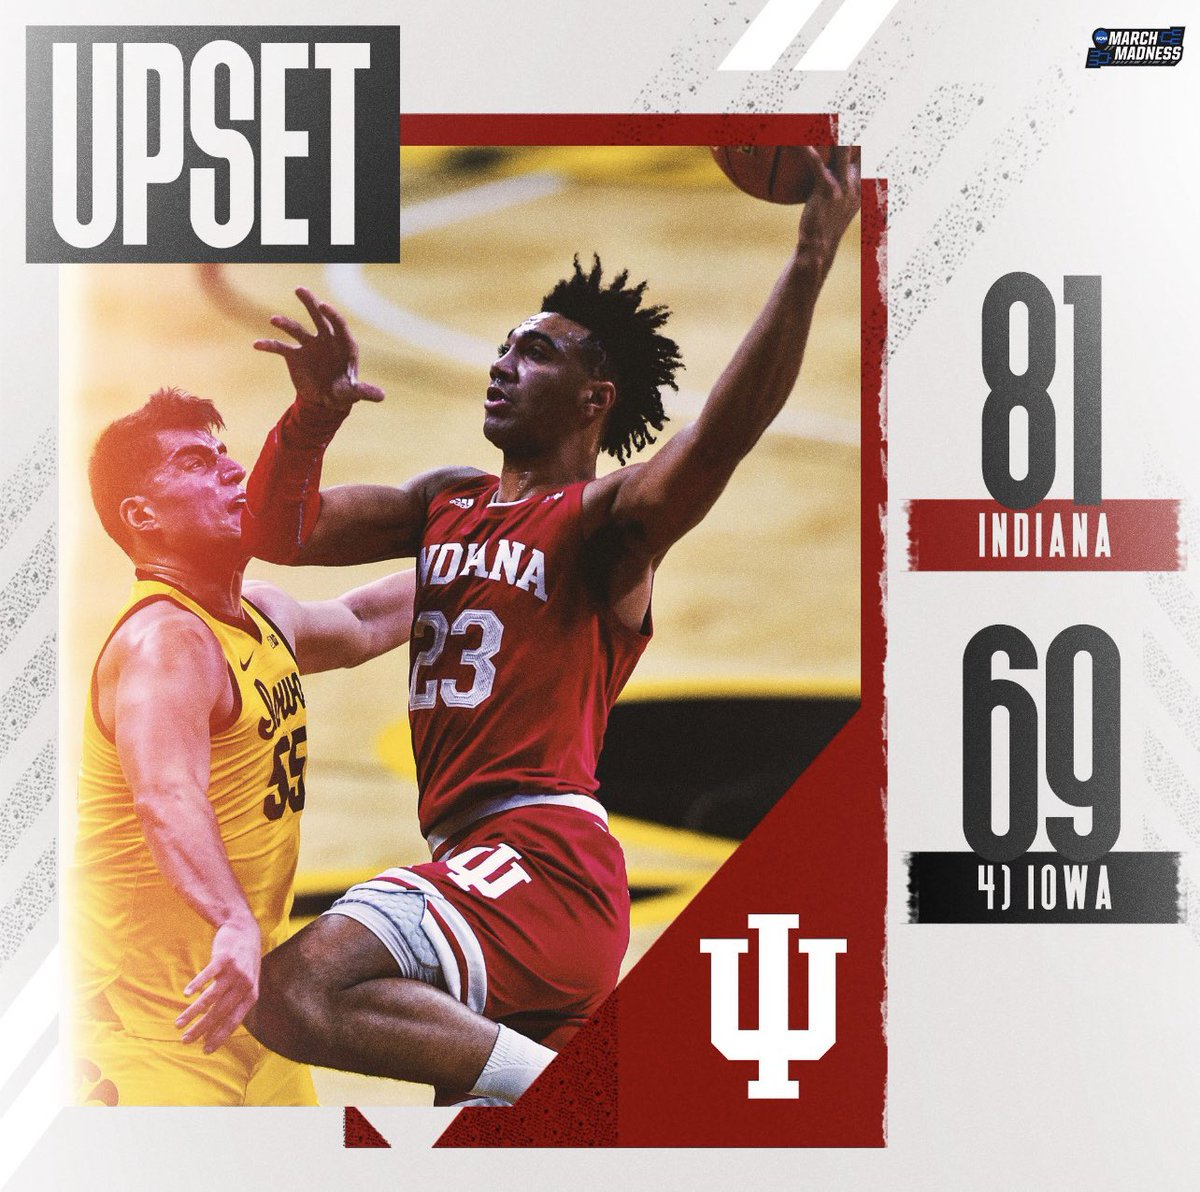 BIG WIN FOR THE HOOSIERS🔥 Lead by Trayce Jackson-Davis with 23 points and 7 rebounds. IU is looking to turn its season around and finish strong in the Big Ten Conference. Can they do it?? #IUBB